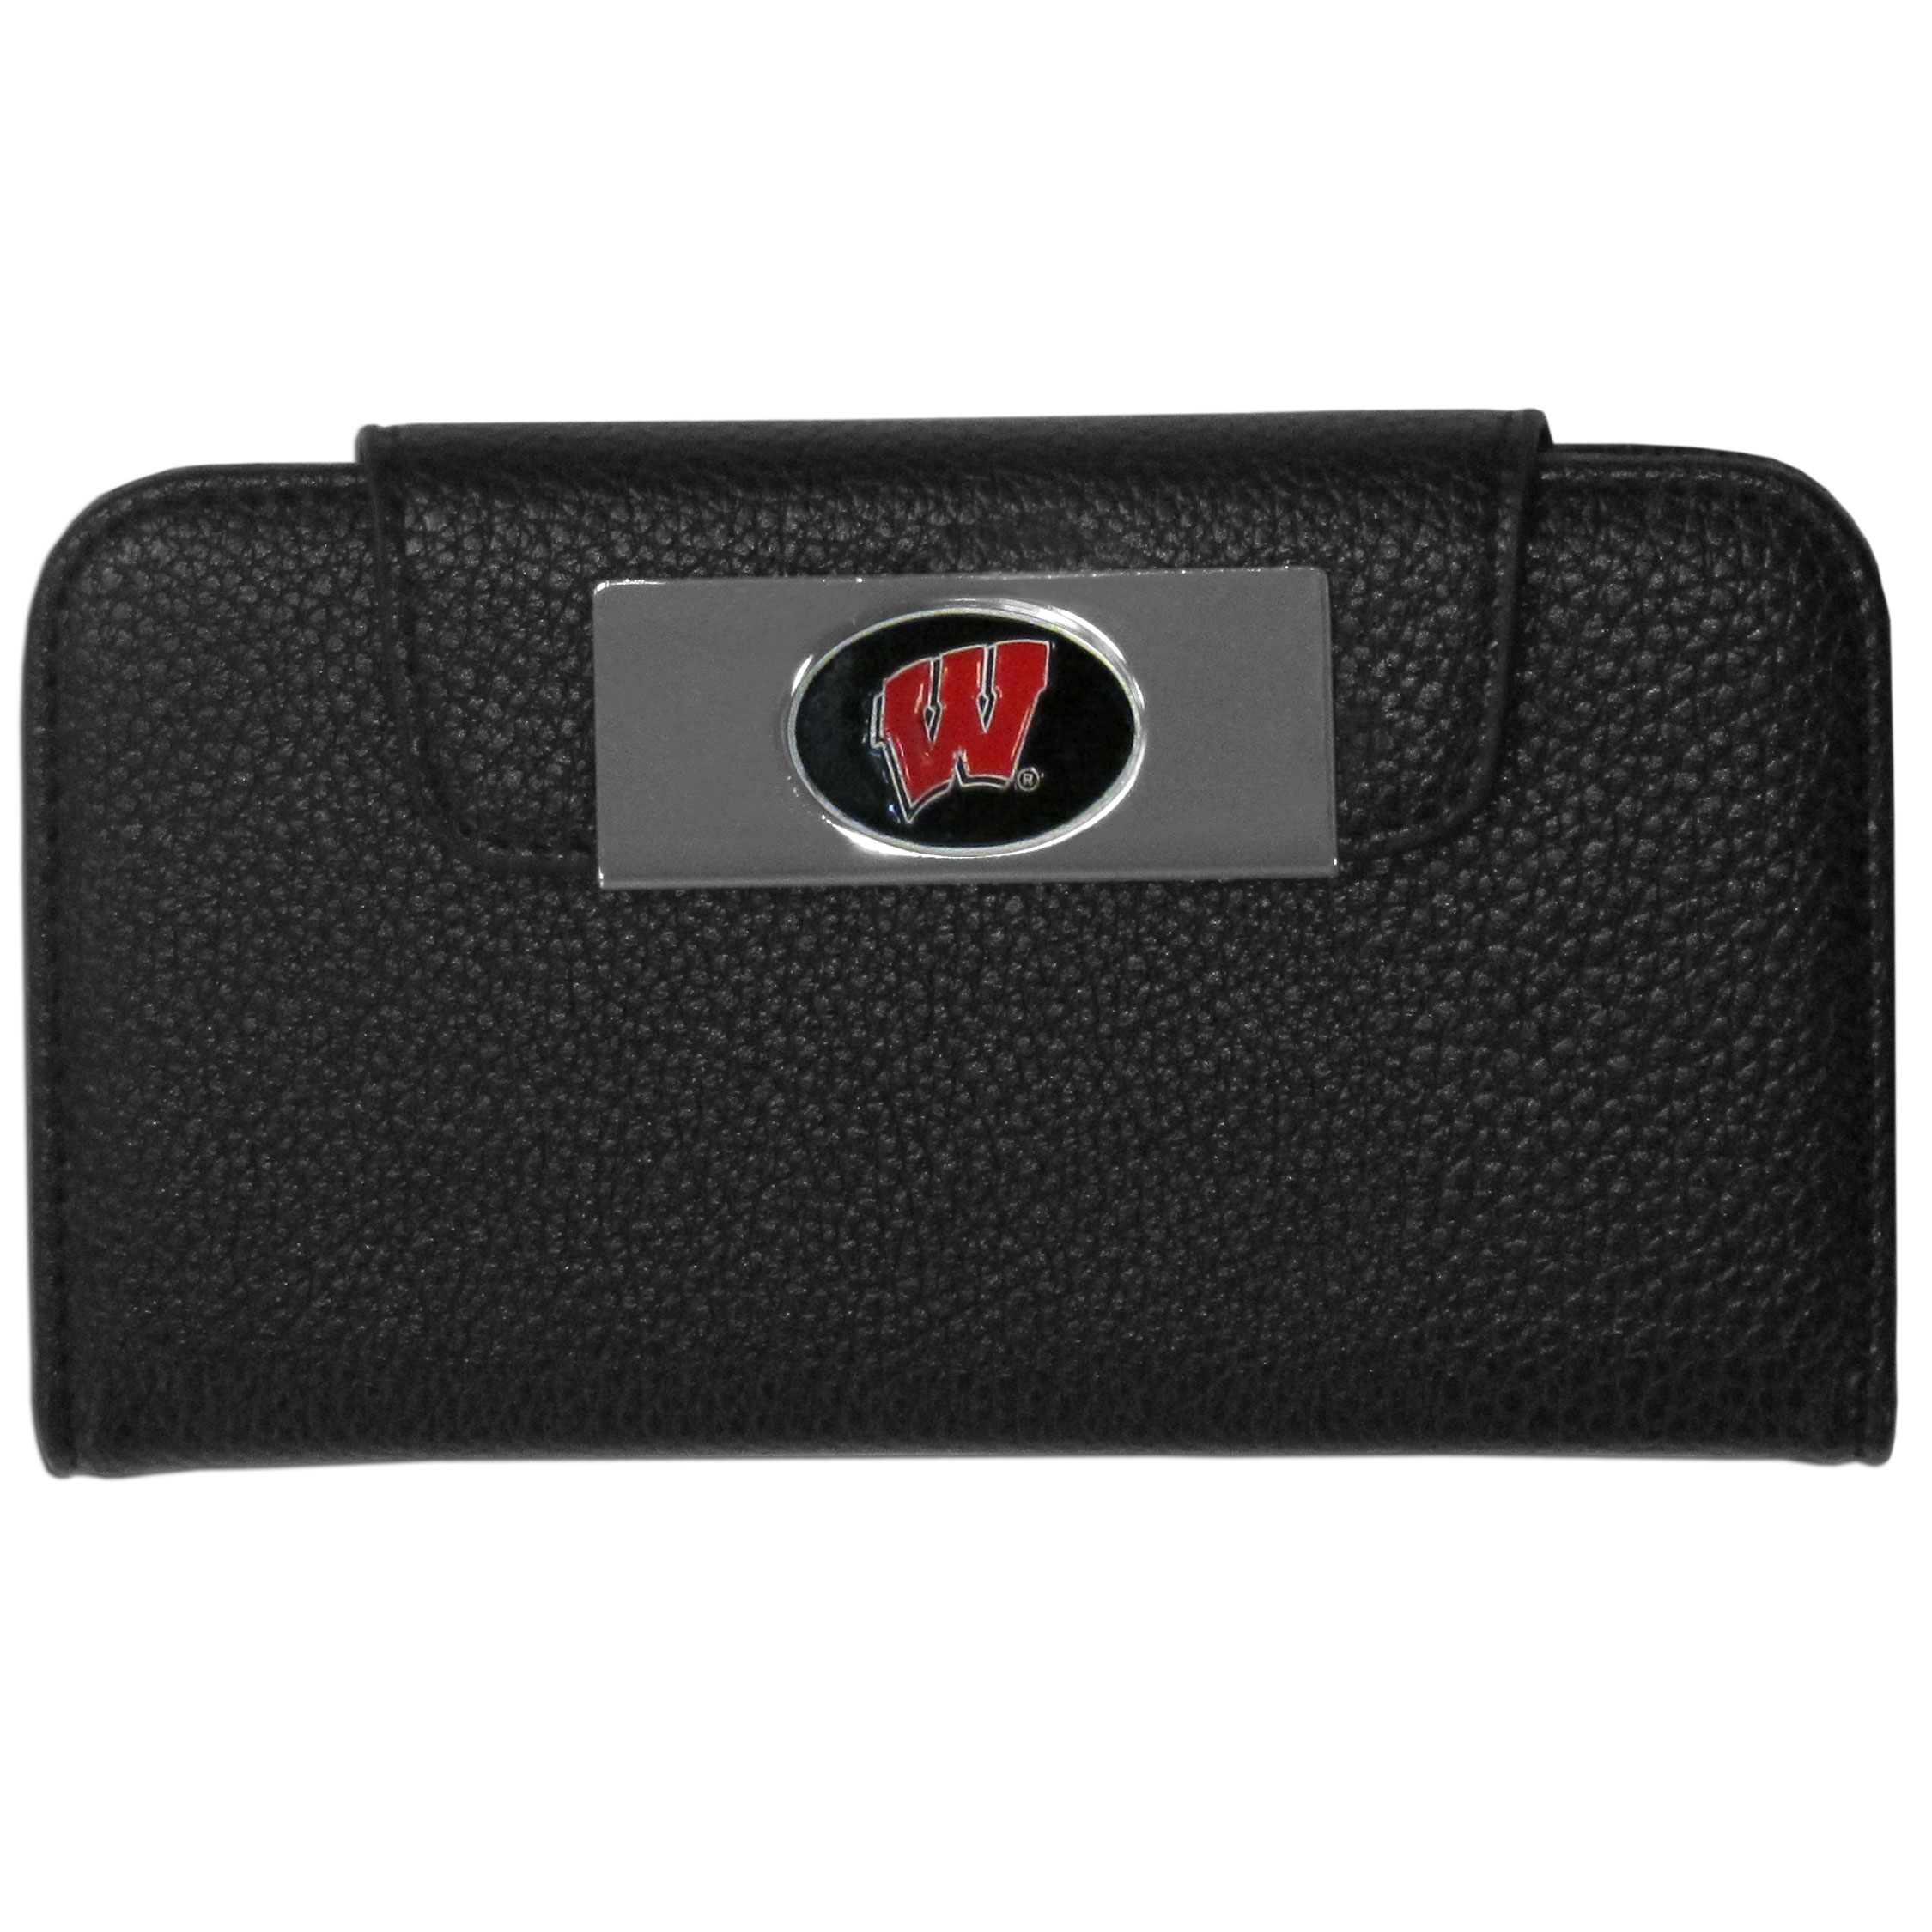 Wisconsin Badgers Samsung Galaxy S4 Wallet Case - This new & wildly popular case is ideal for those who like to travel light! The stylish case has an inner hard shell that securely holds your phone while allowing complete access to the phone's functionality. The flip cover has slots for credit cards, business cards and identification. The magnetic flip cover has a metal Wisconsin Badgers emblem on a high polish chrome backing. Fits the Samsung Galaxy S4